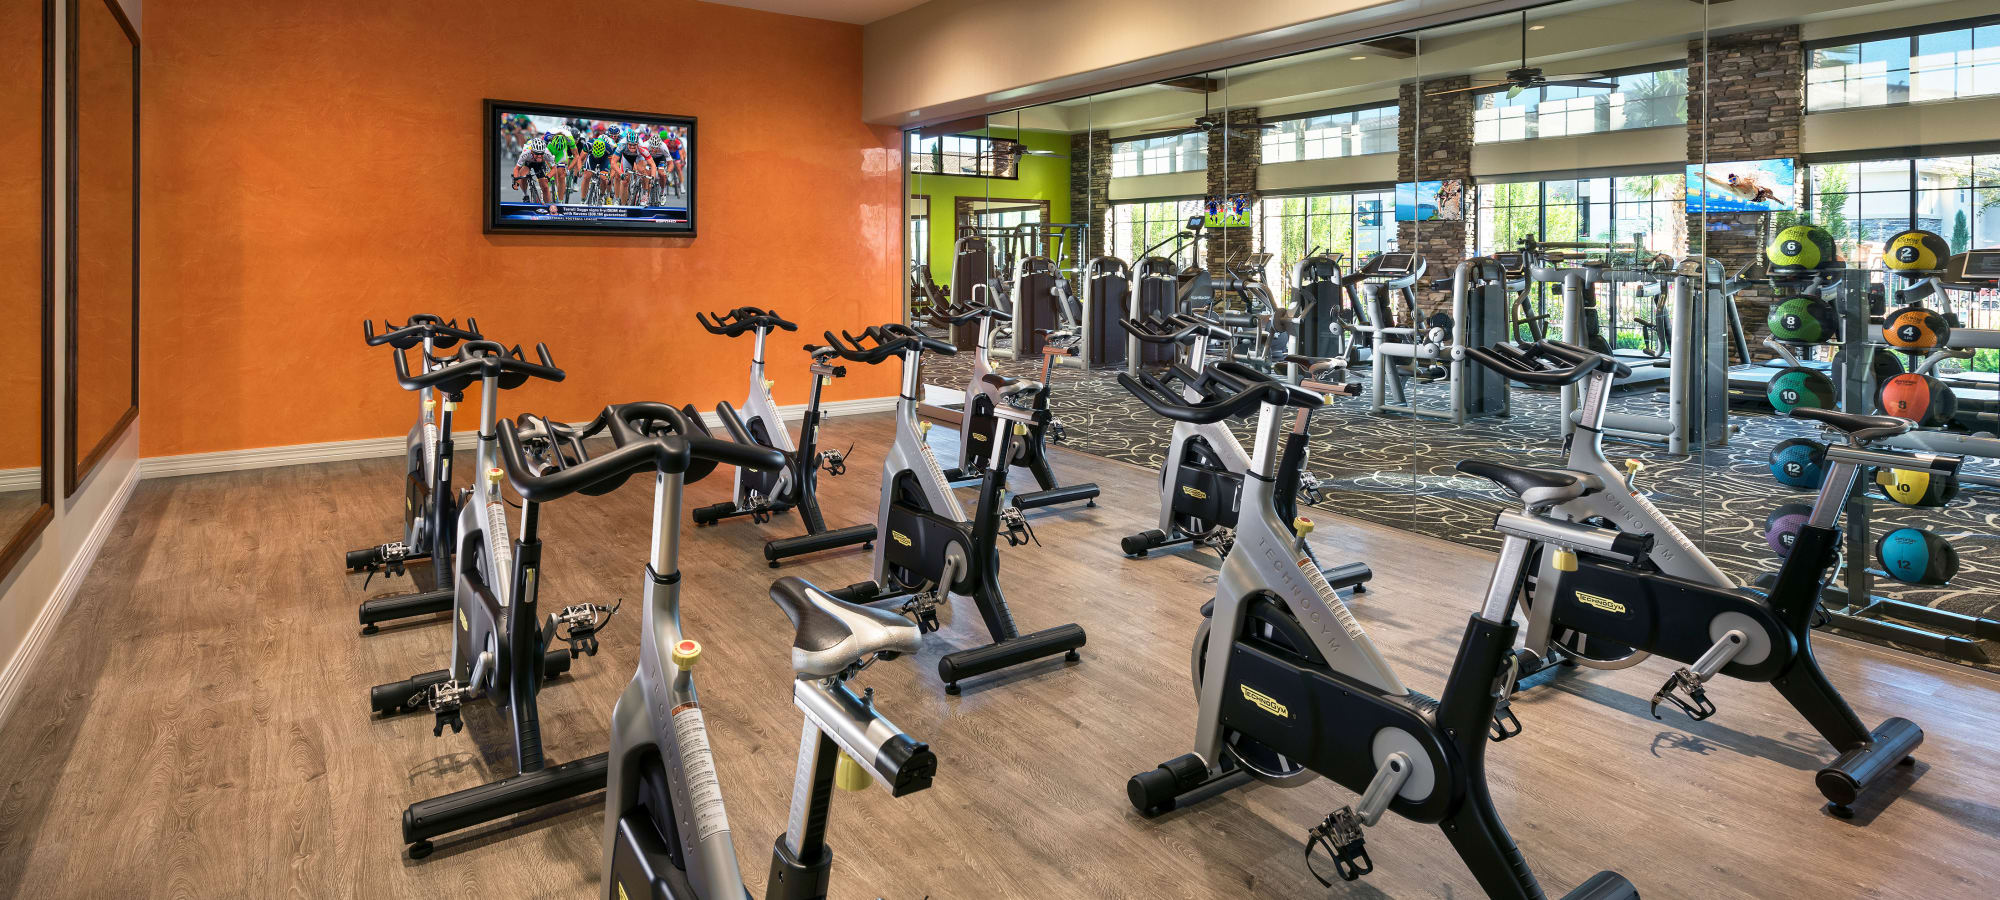 Well-equipped fitness center at San Travesia in Scottsdale, Arizona